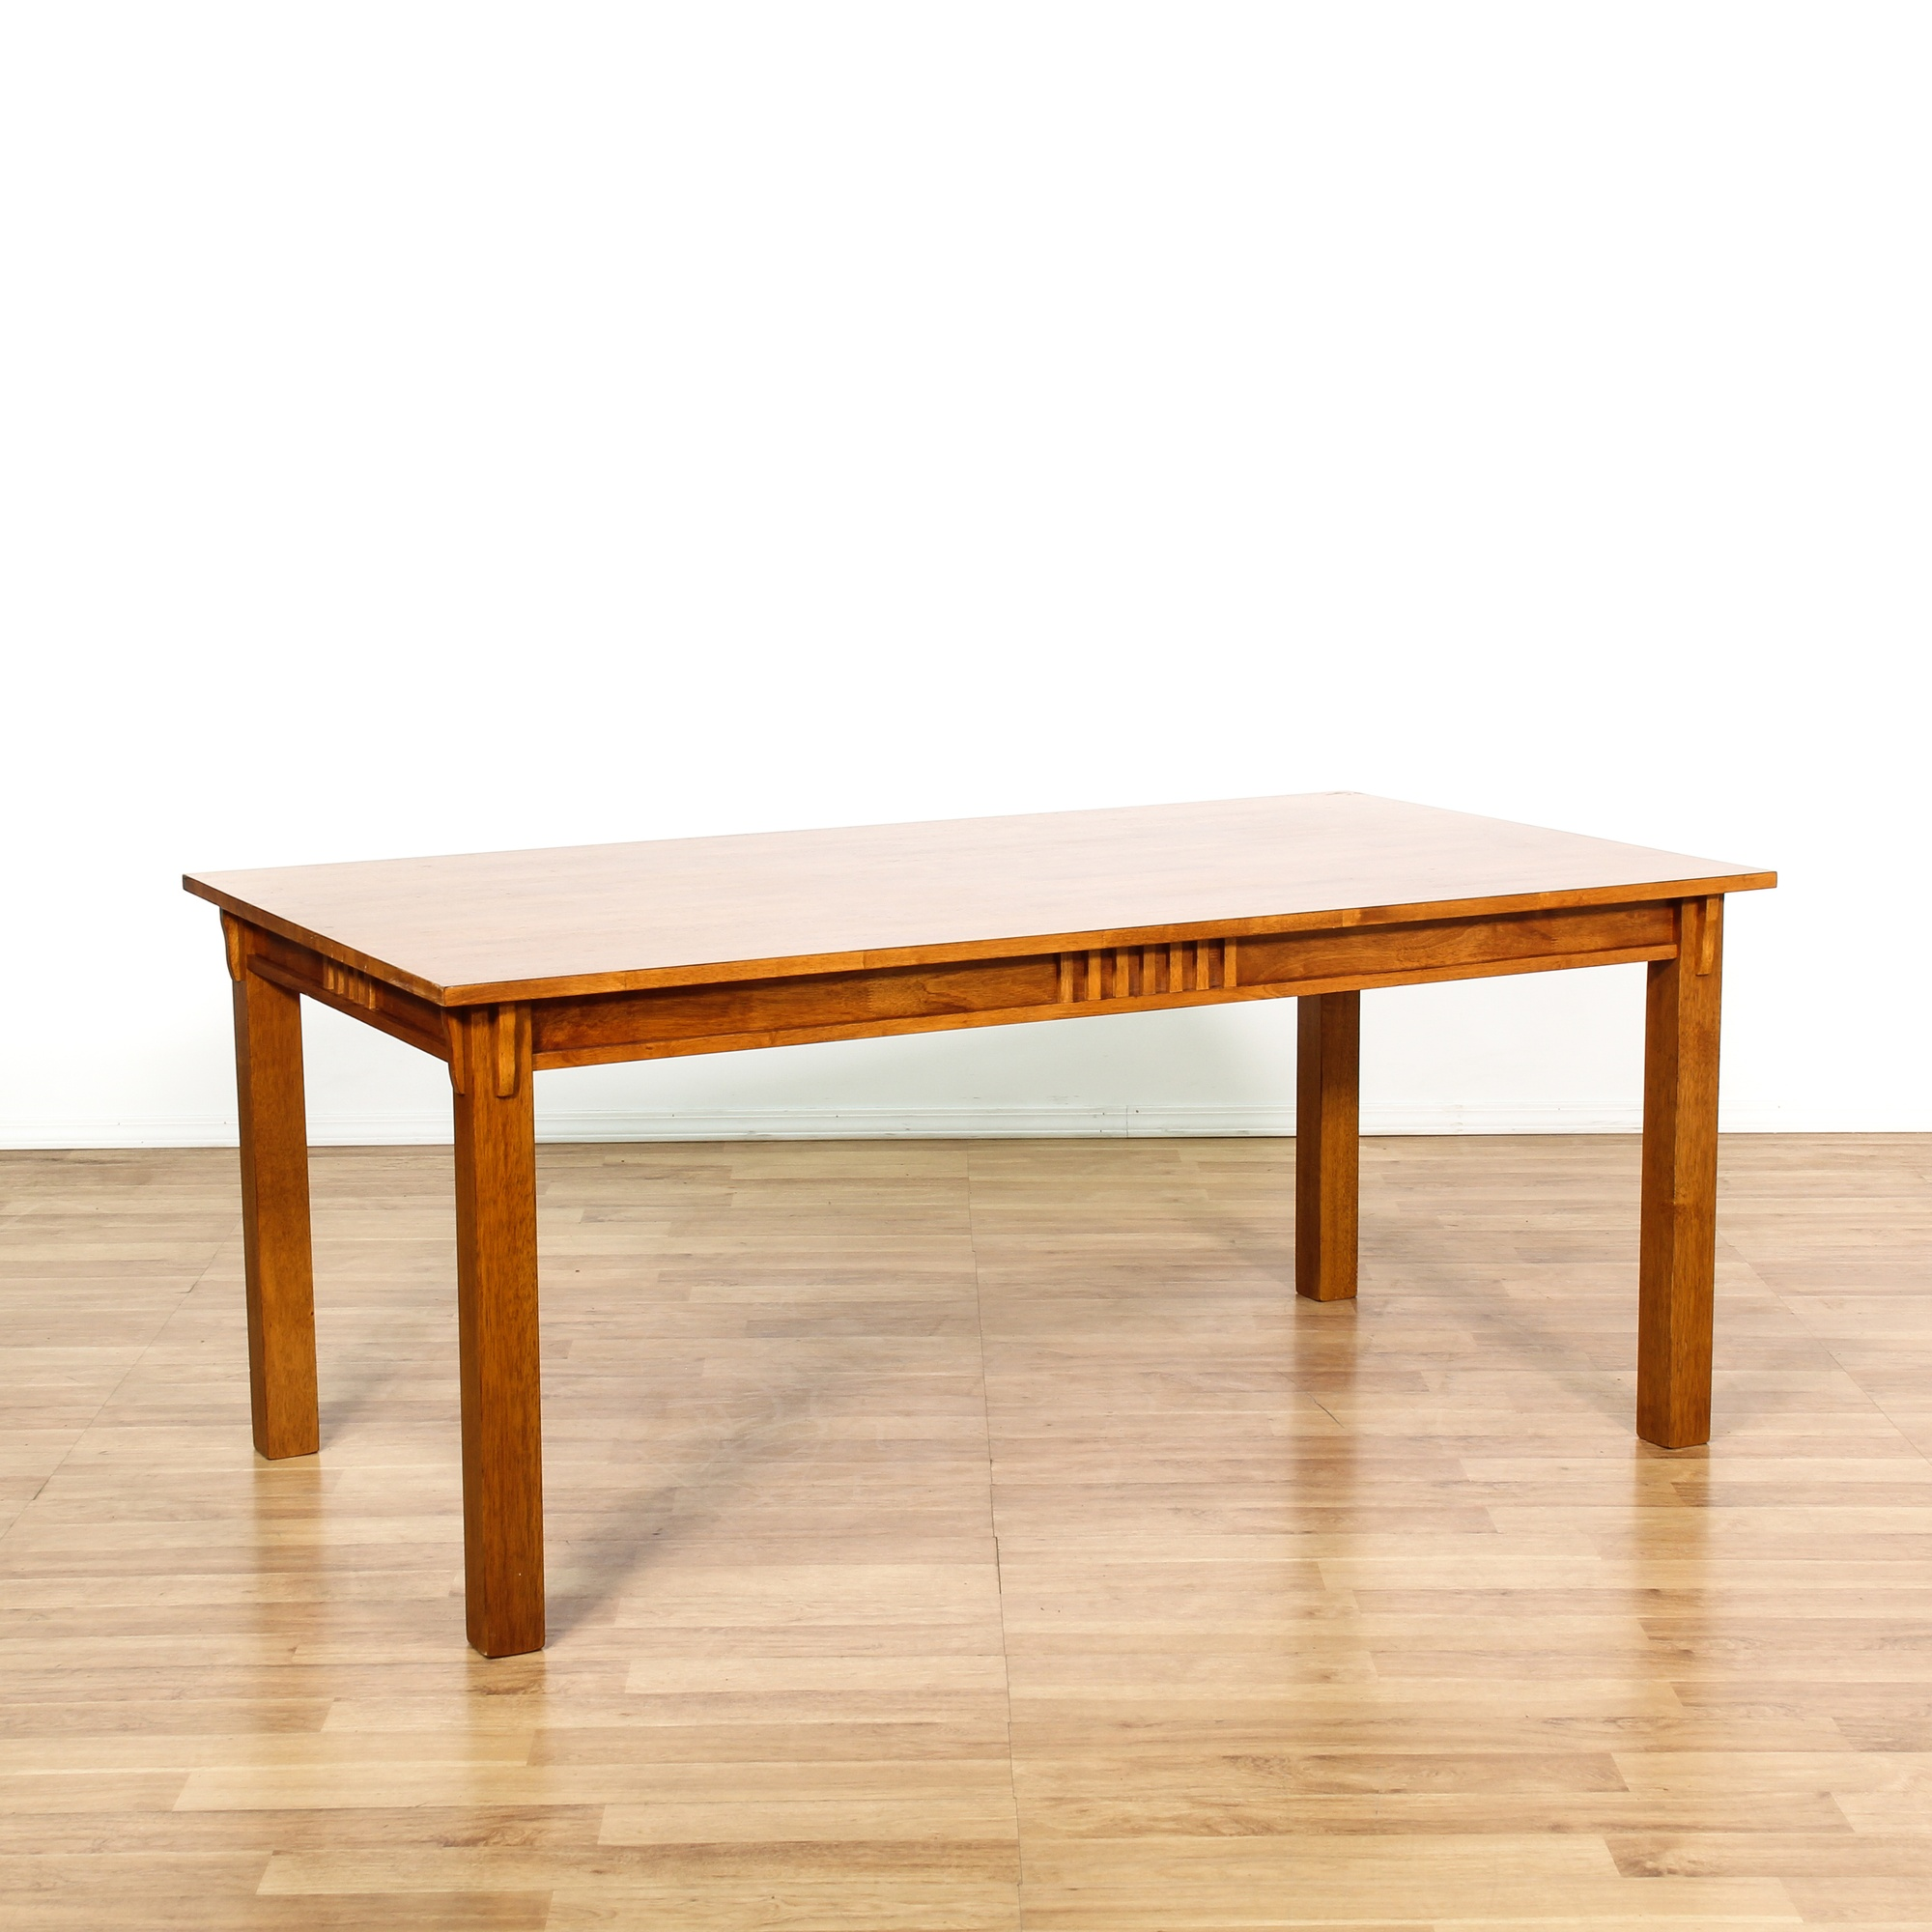 Dining Room Furniture San Diego: Solid Birch Mission Style Dining Table